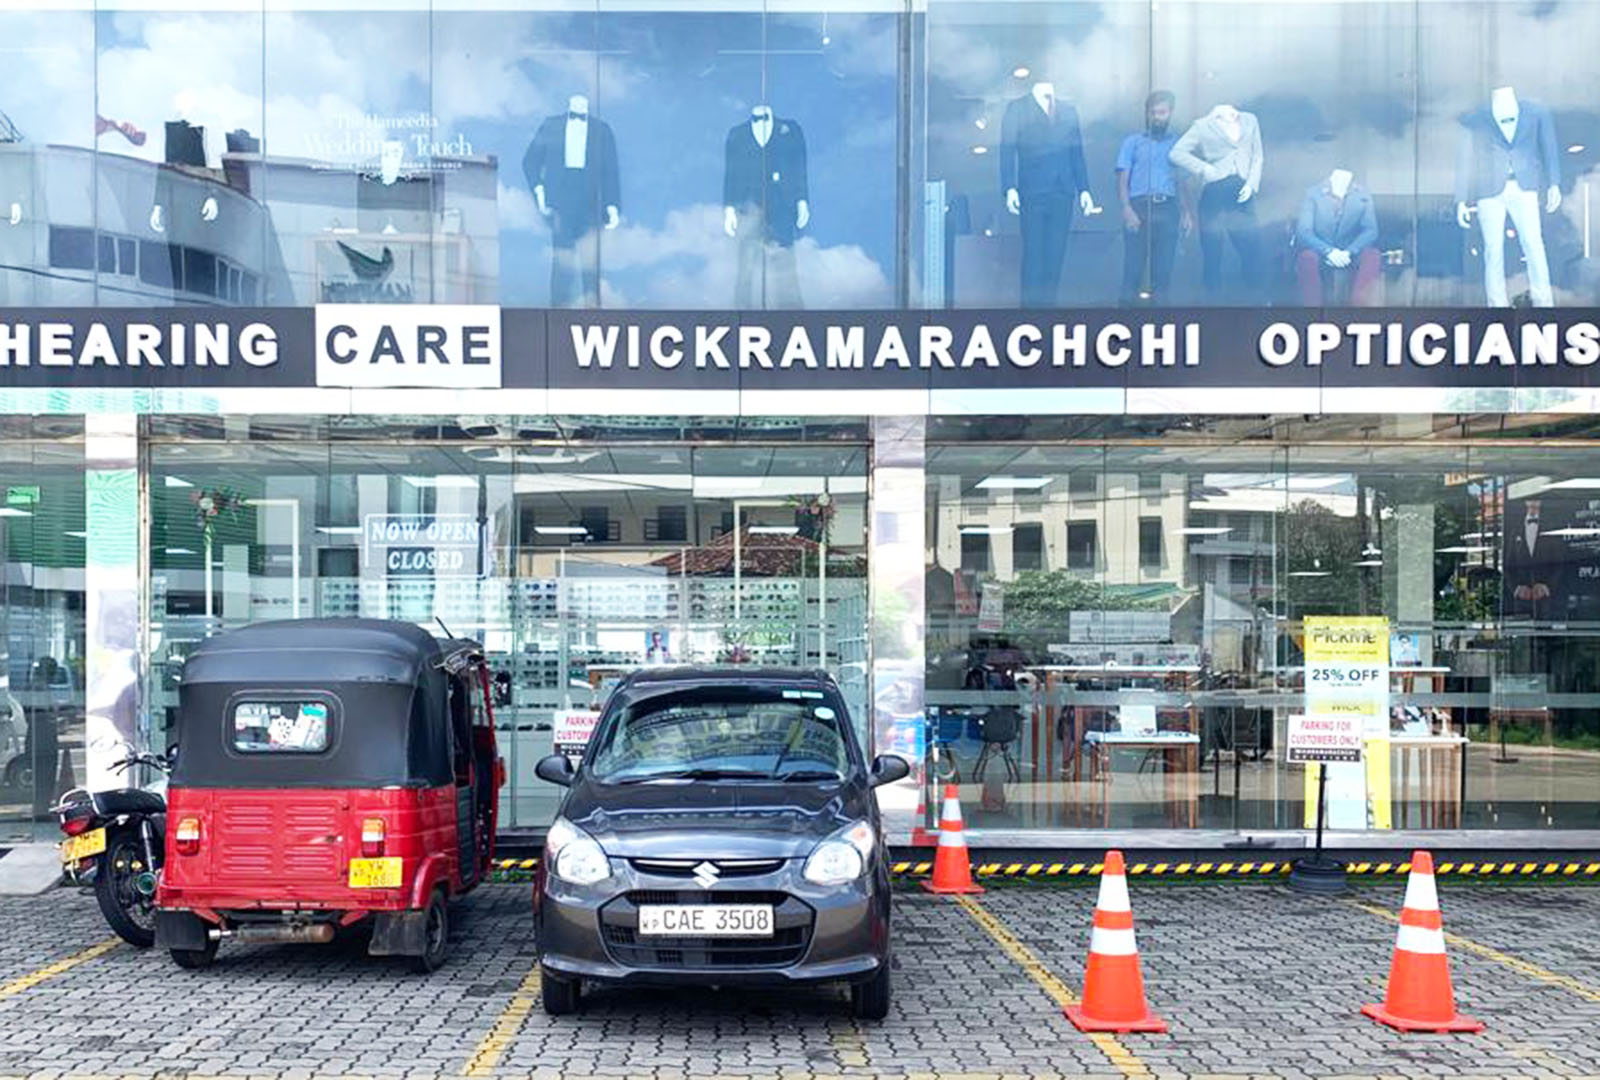 Wickramarachchi Opticians and Hearing care expanding